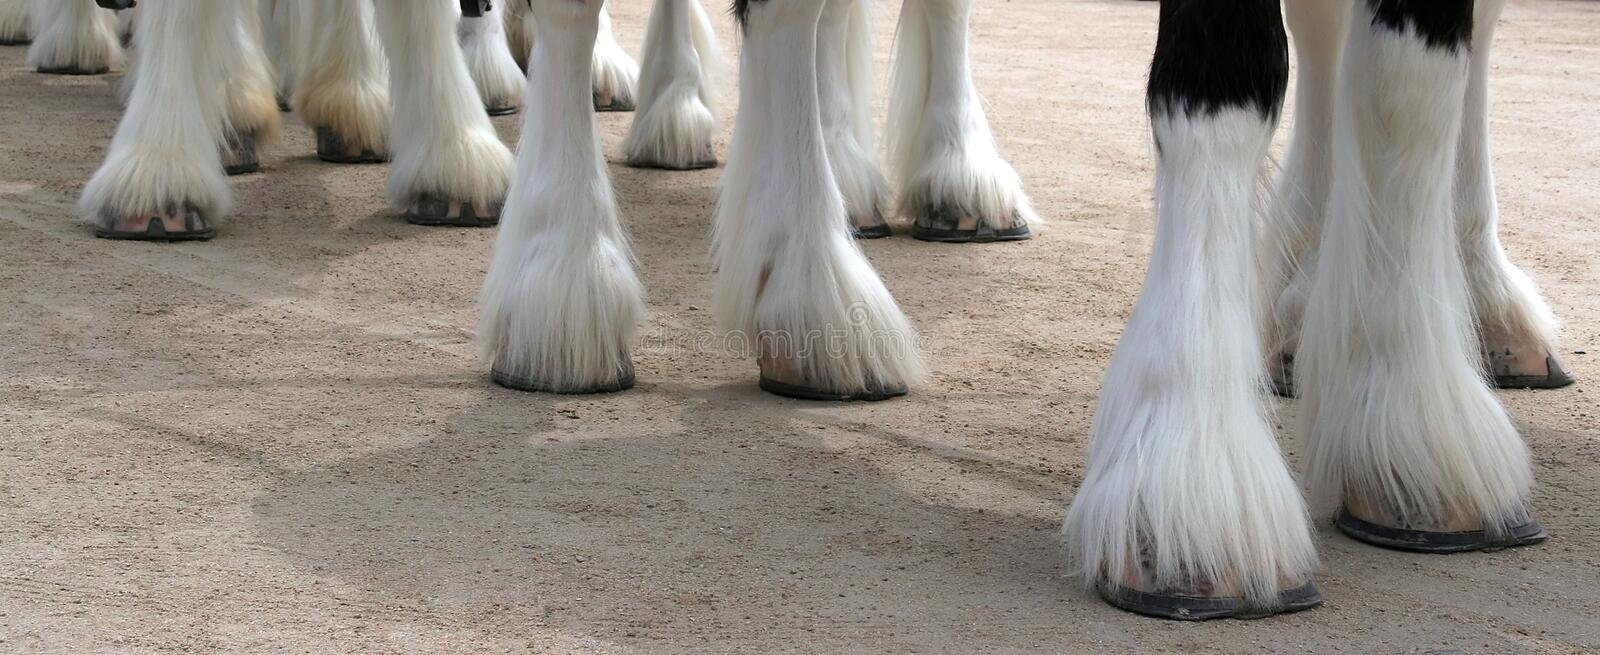 Download Clydesdale Line stock image. Image of equines, beer, farm - 2302279